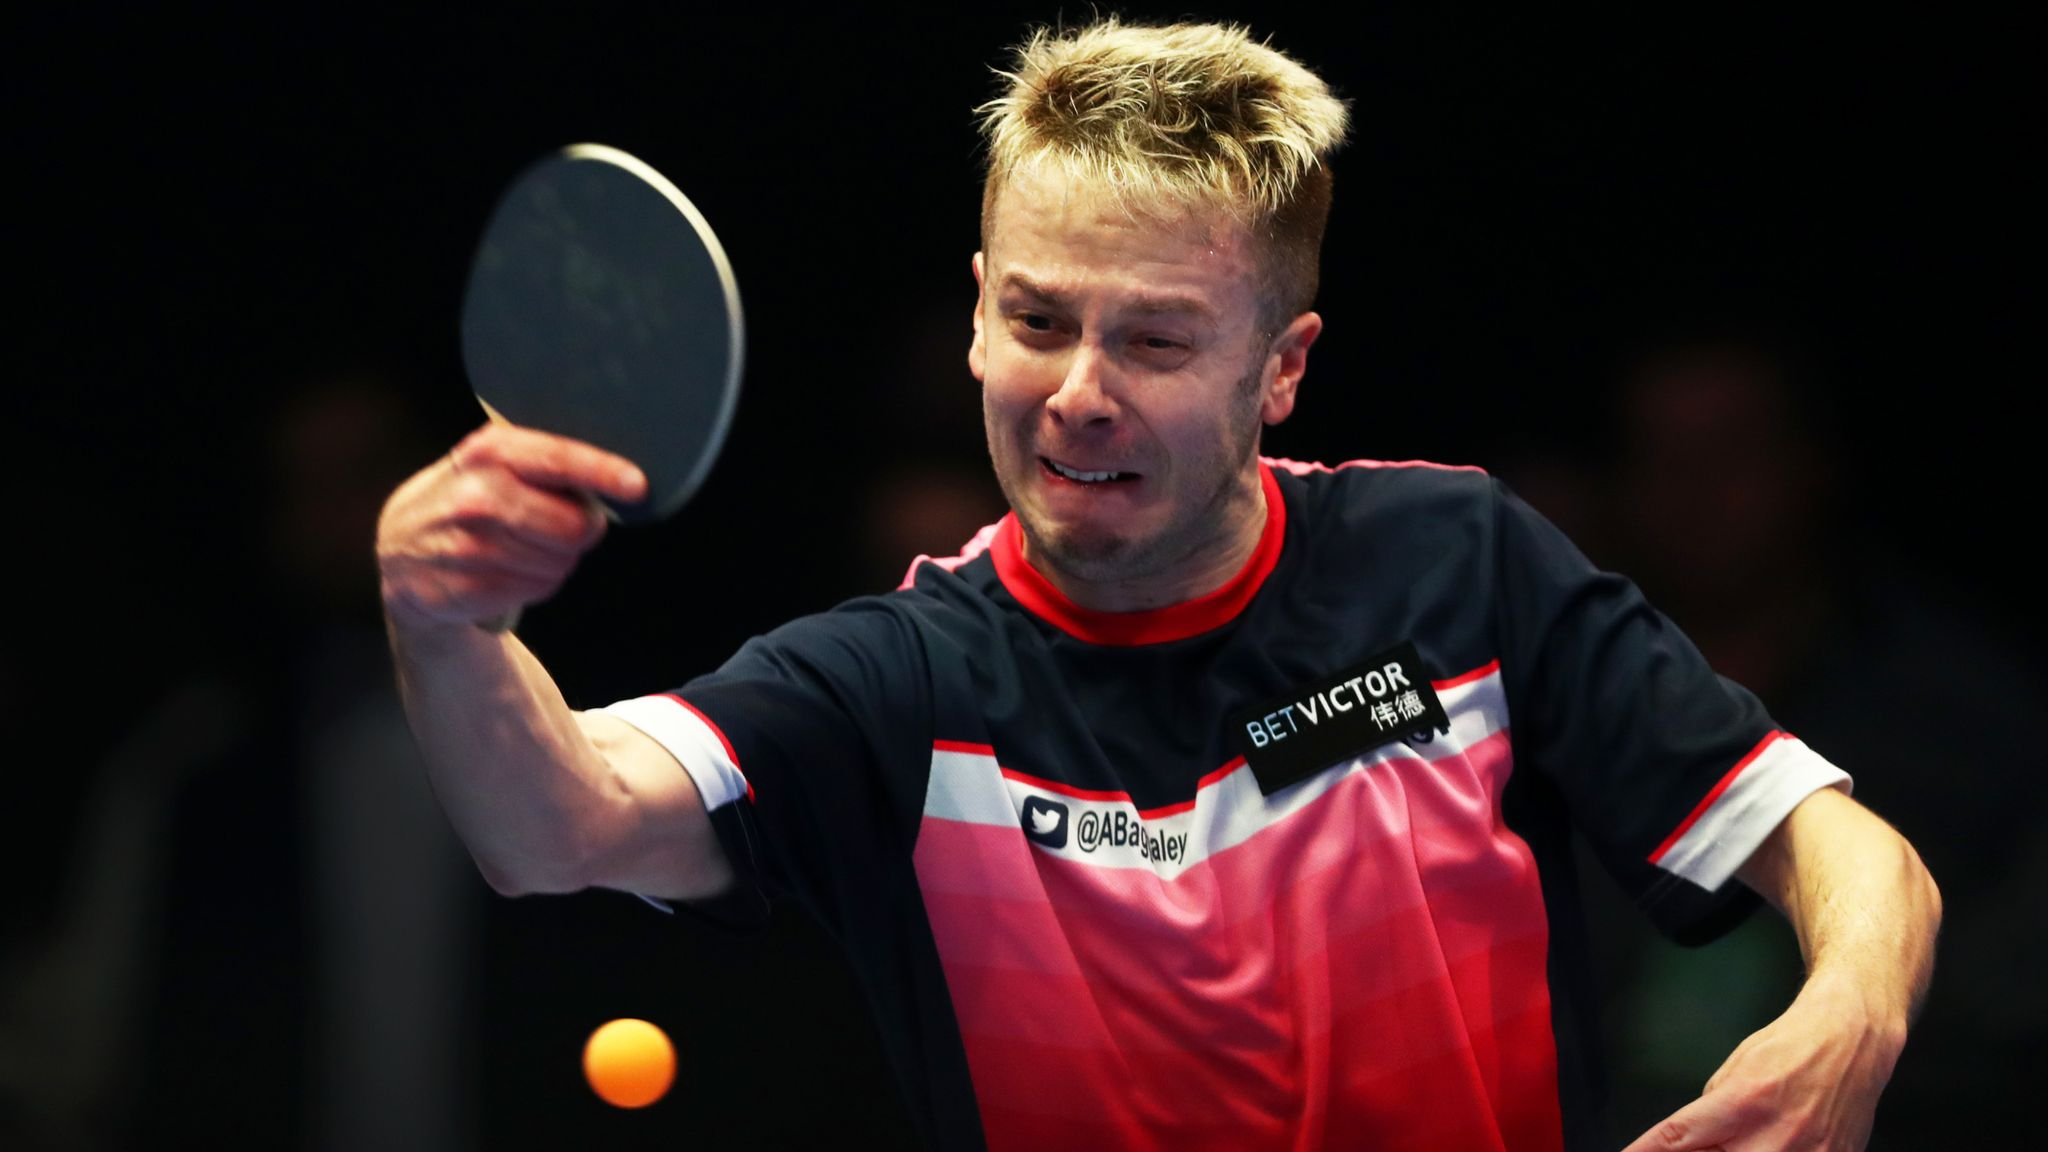 World championship of ping pong betting on sports is online betting legal in washington state